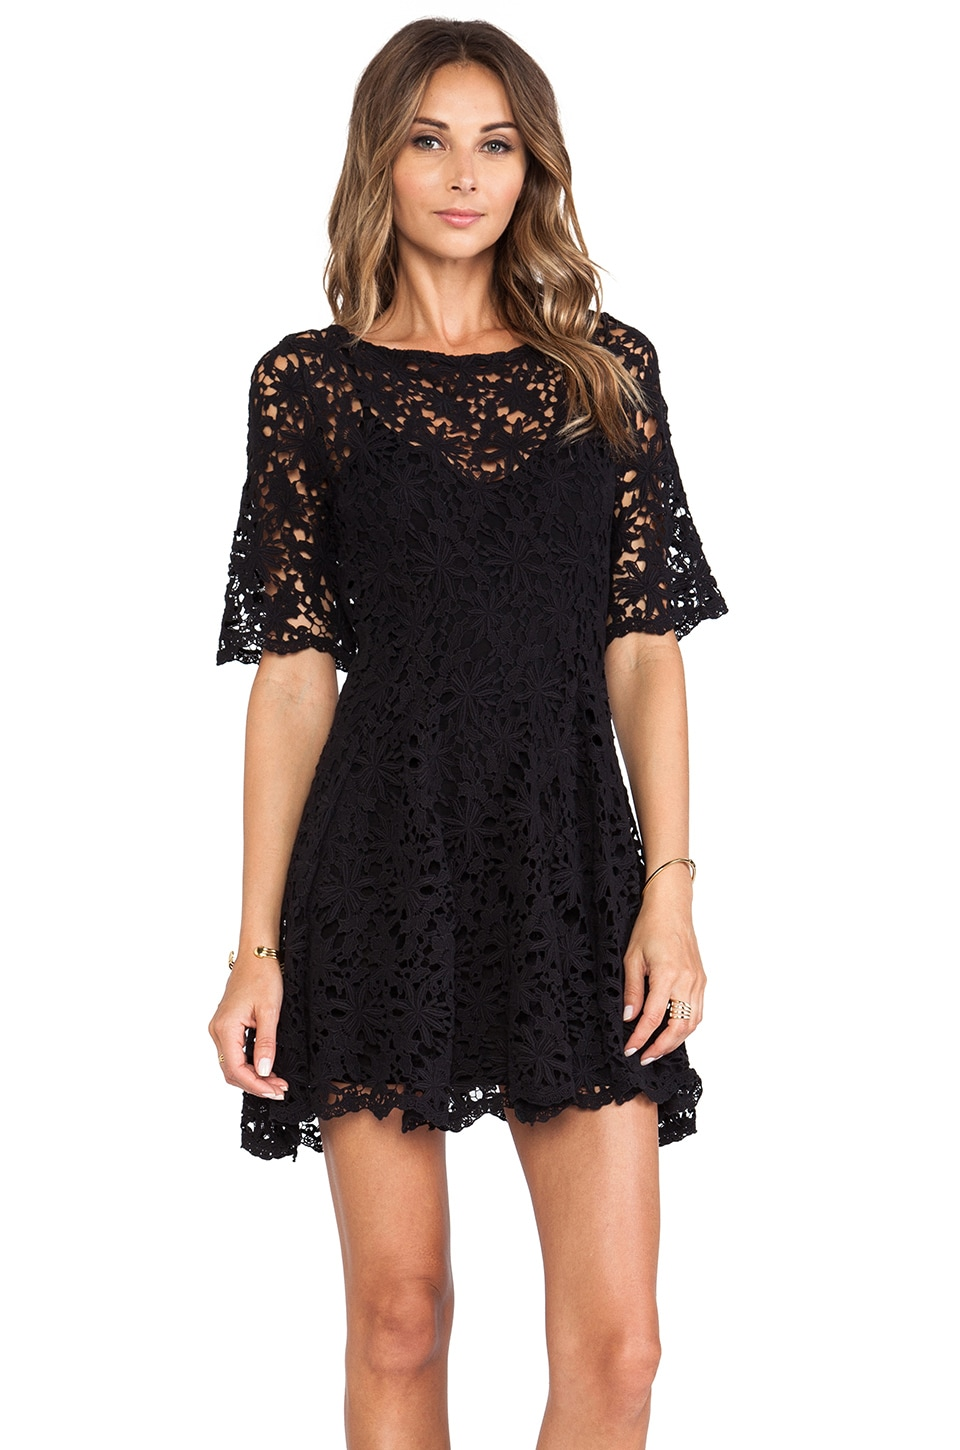 Nightcap Daisy Crochet Fit and Flare Dress in Black